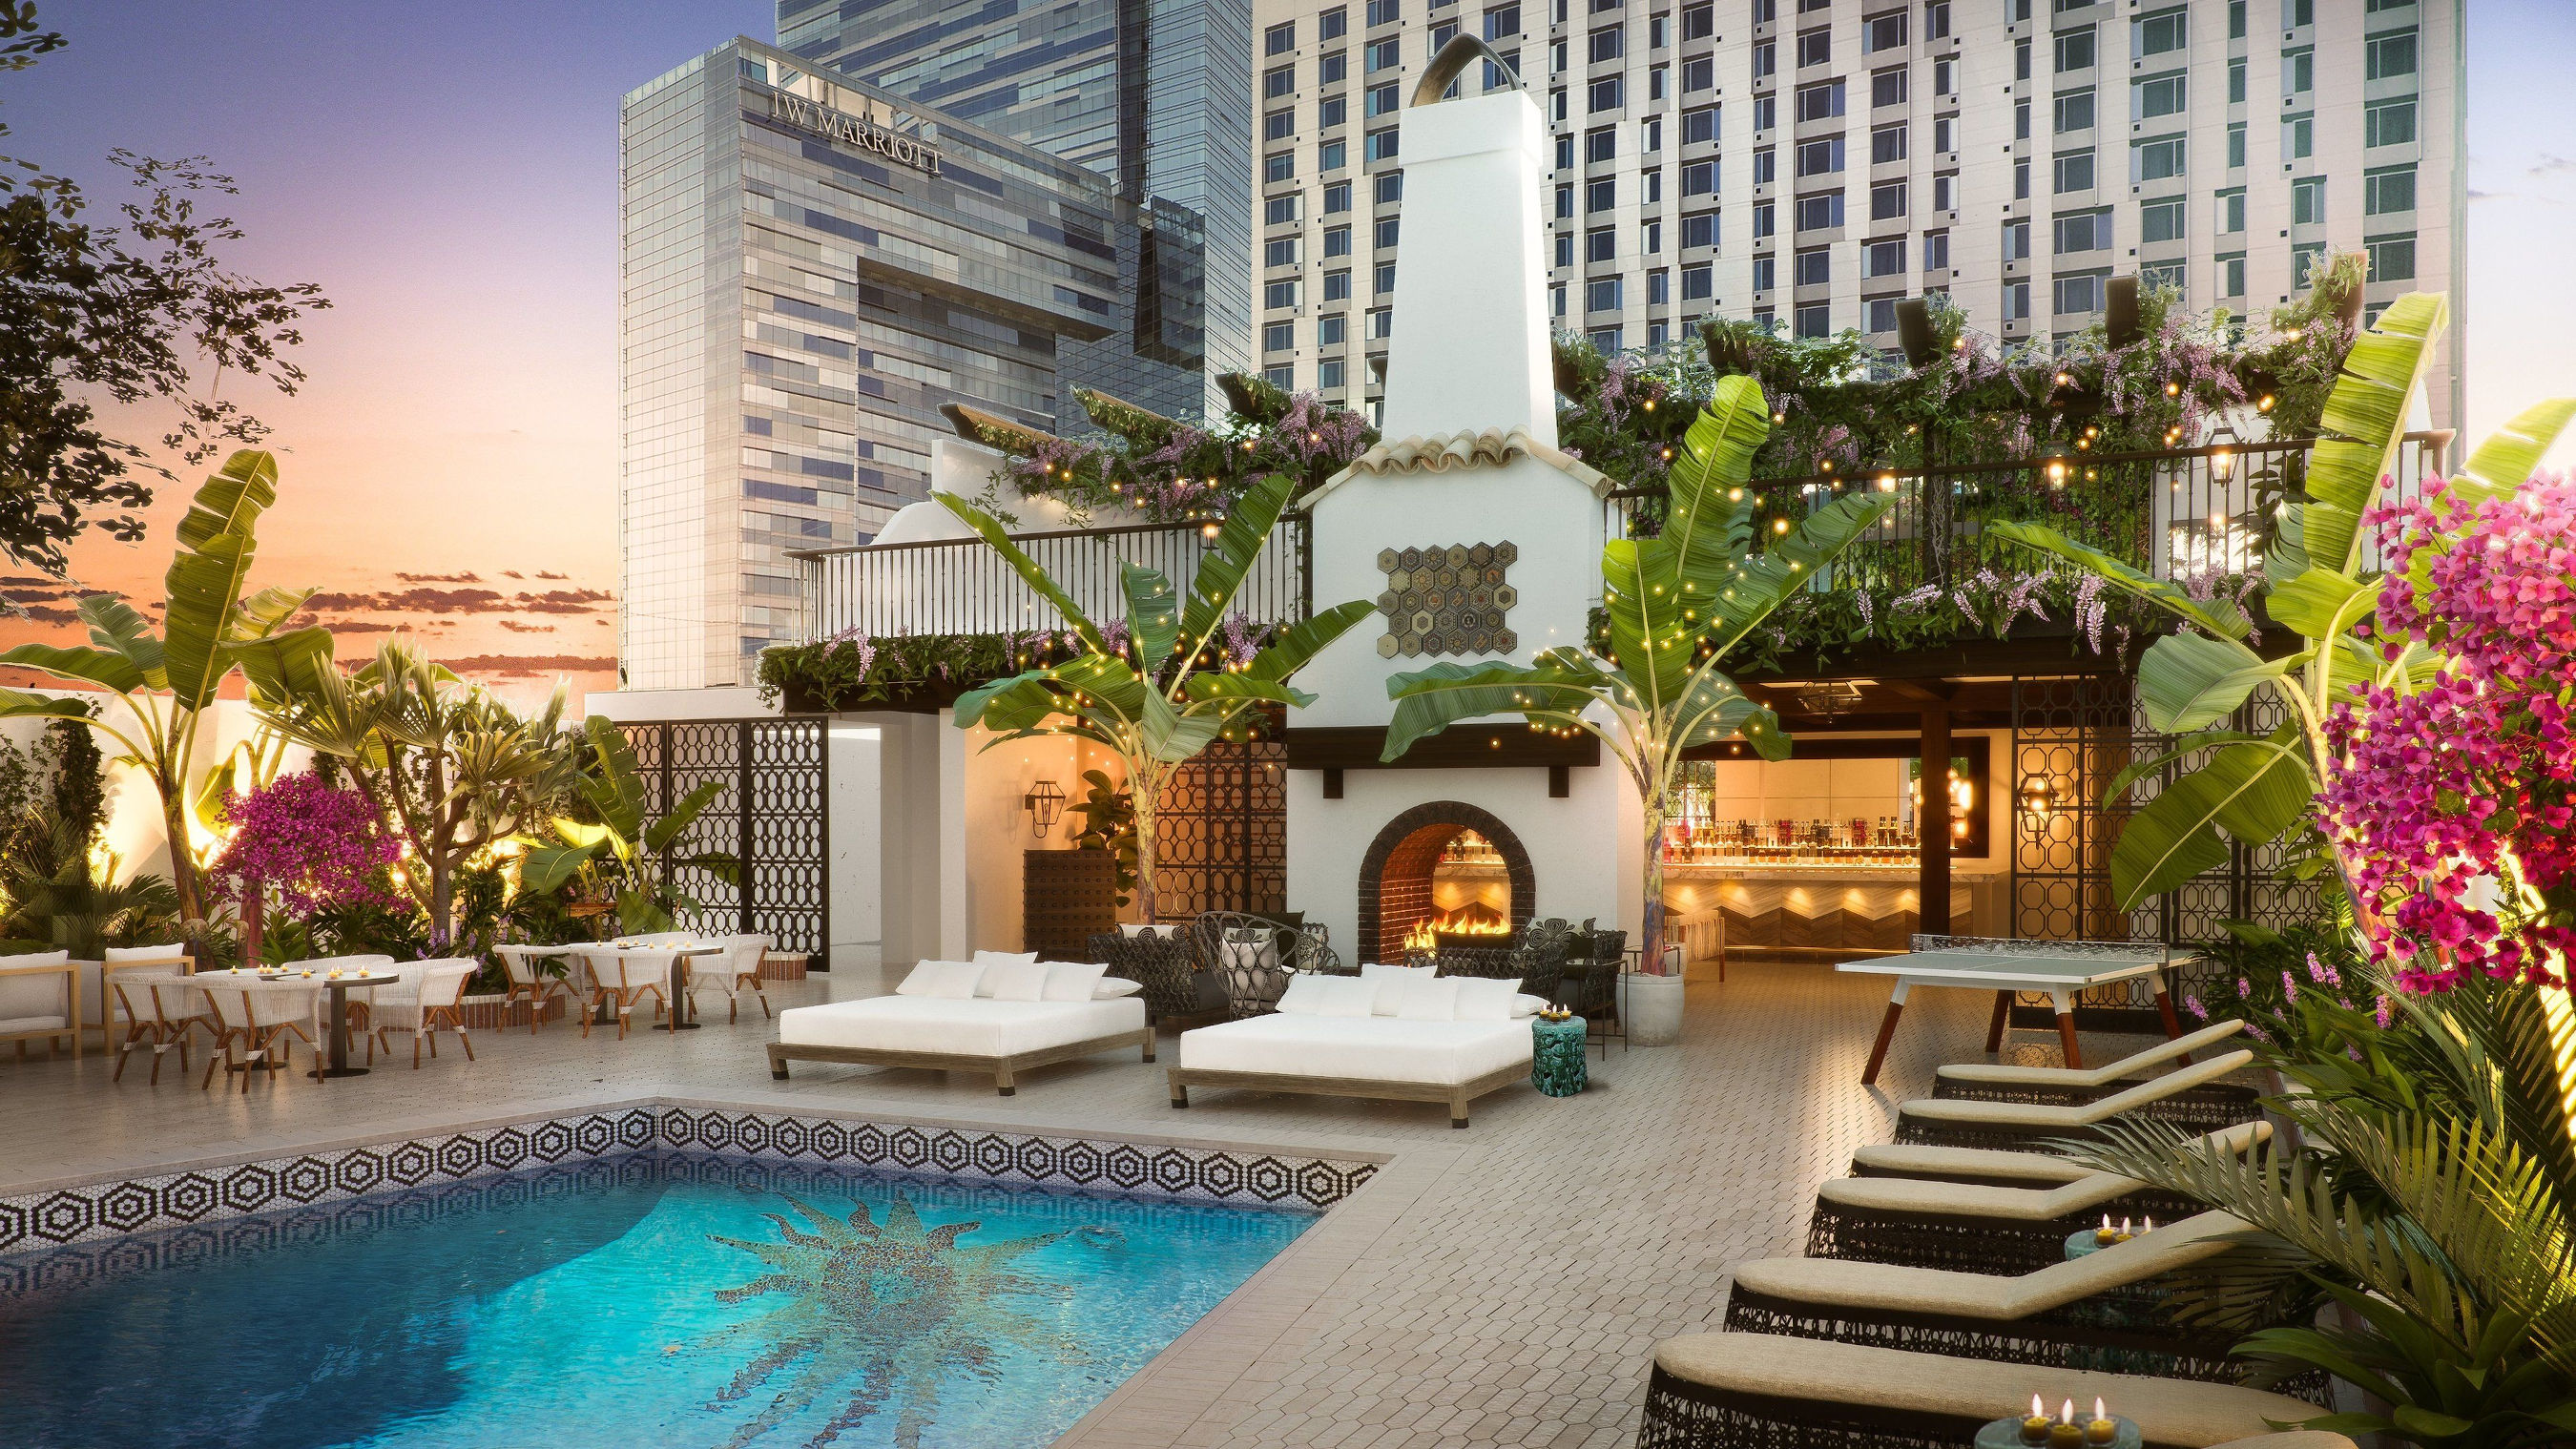 Save on a Stay at Hotel Figueroa During Expedia Travel Week